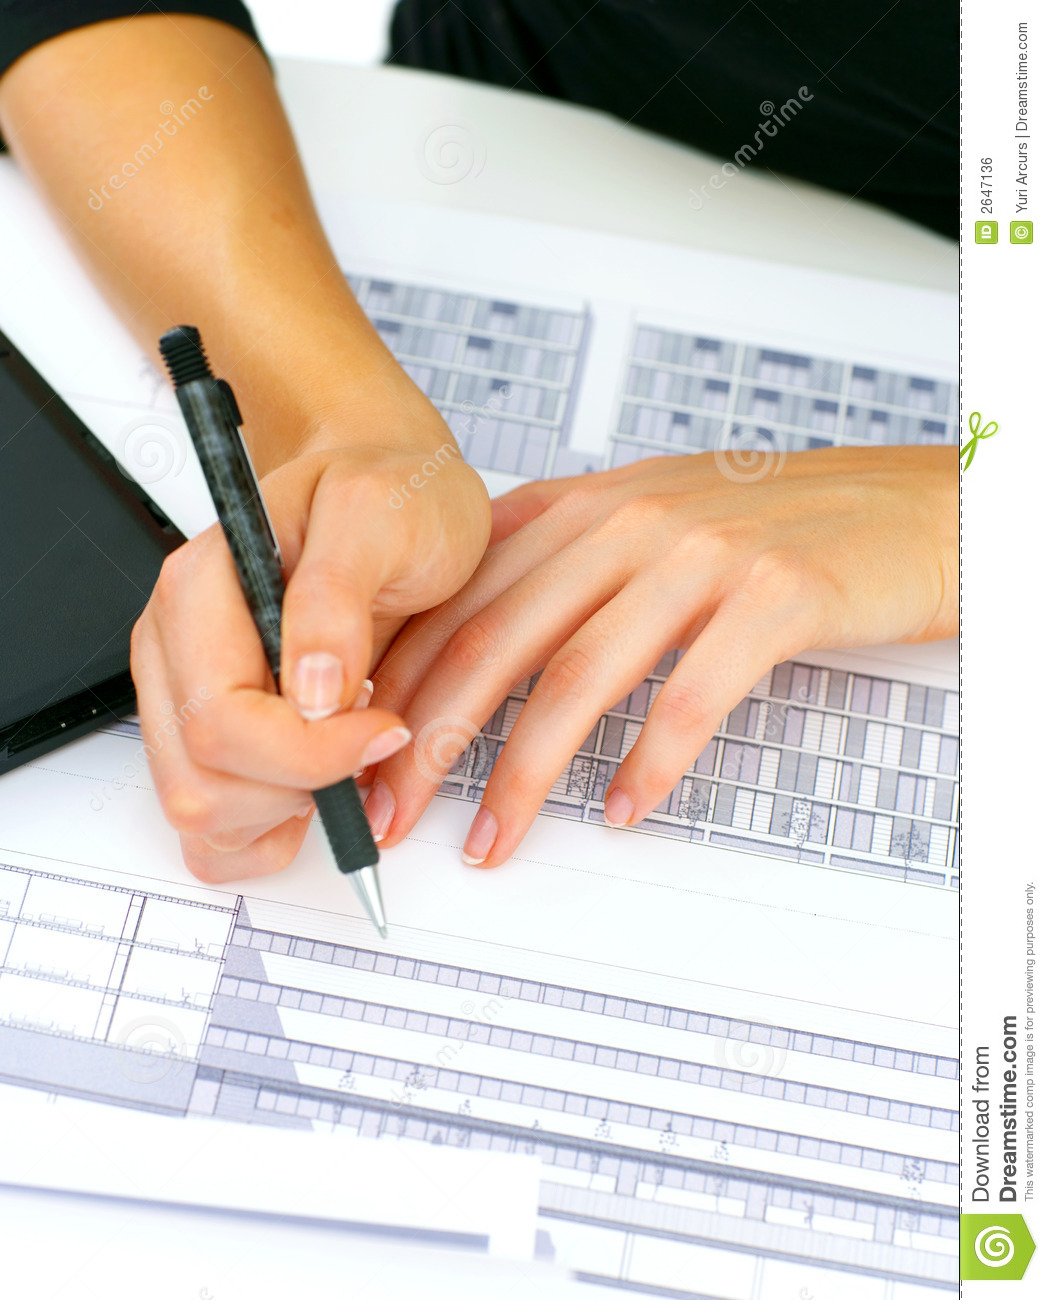 Royalty free stock image planning for the future image for Future planner online